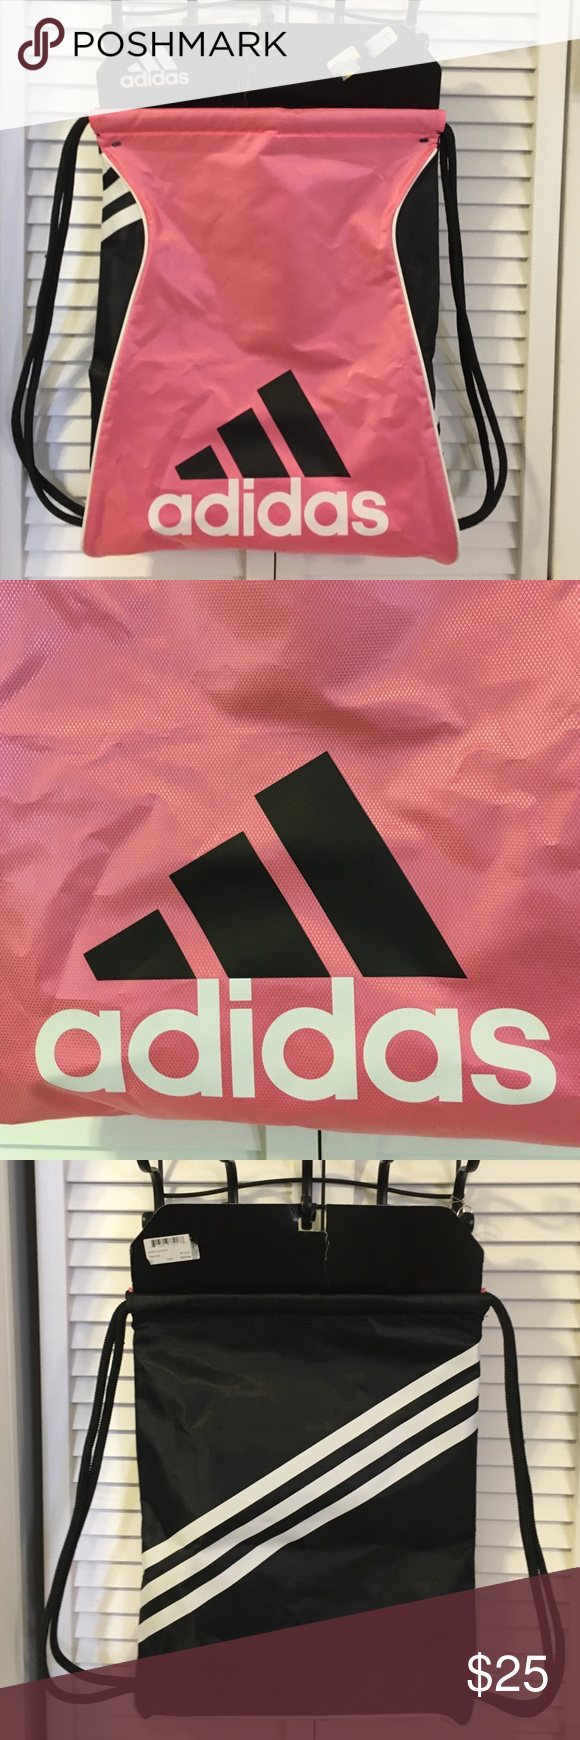 Adidas burst sack pack Brand new Nylon coated canvas bag in pink zest colors 18x14 Adidas Bags Backpacks